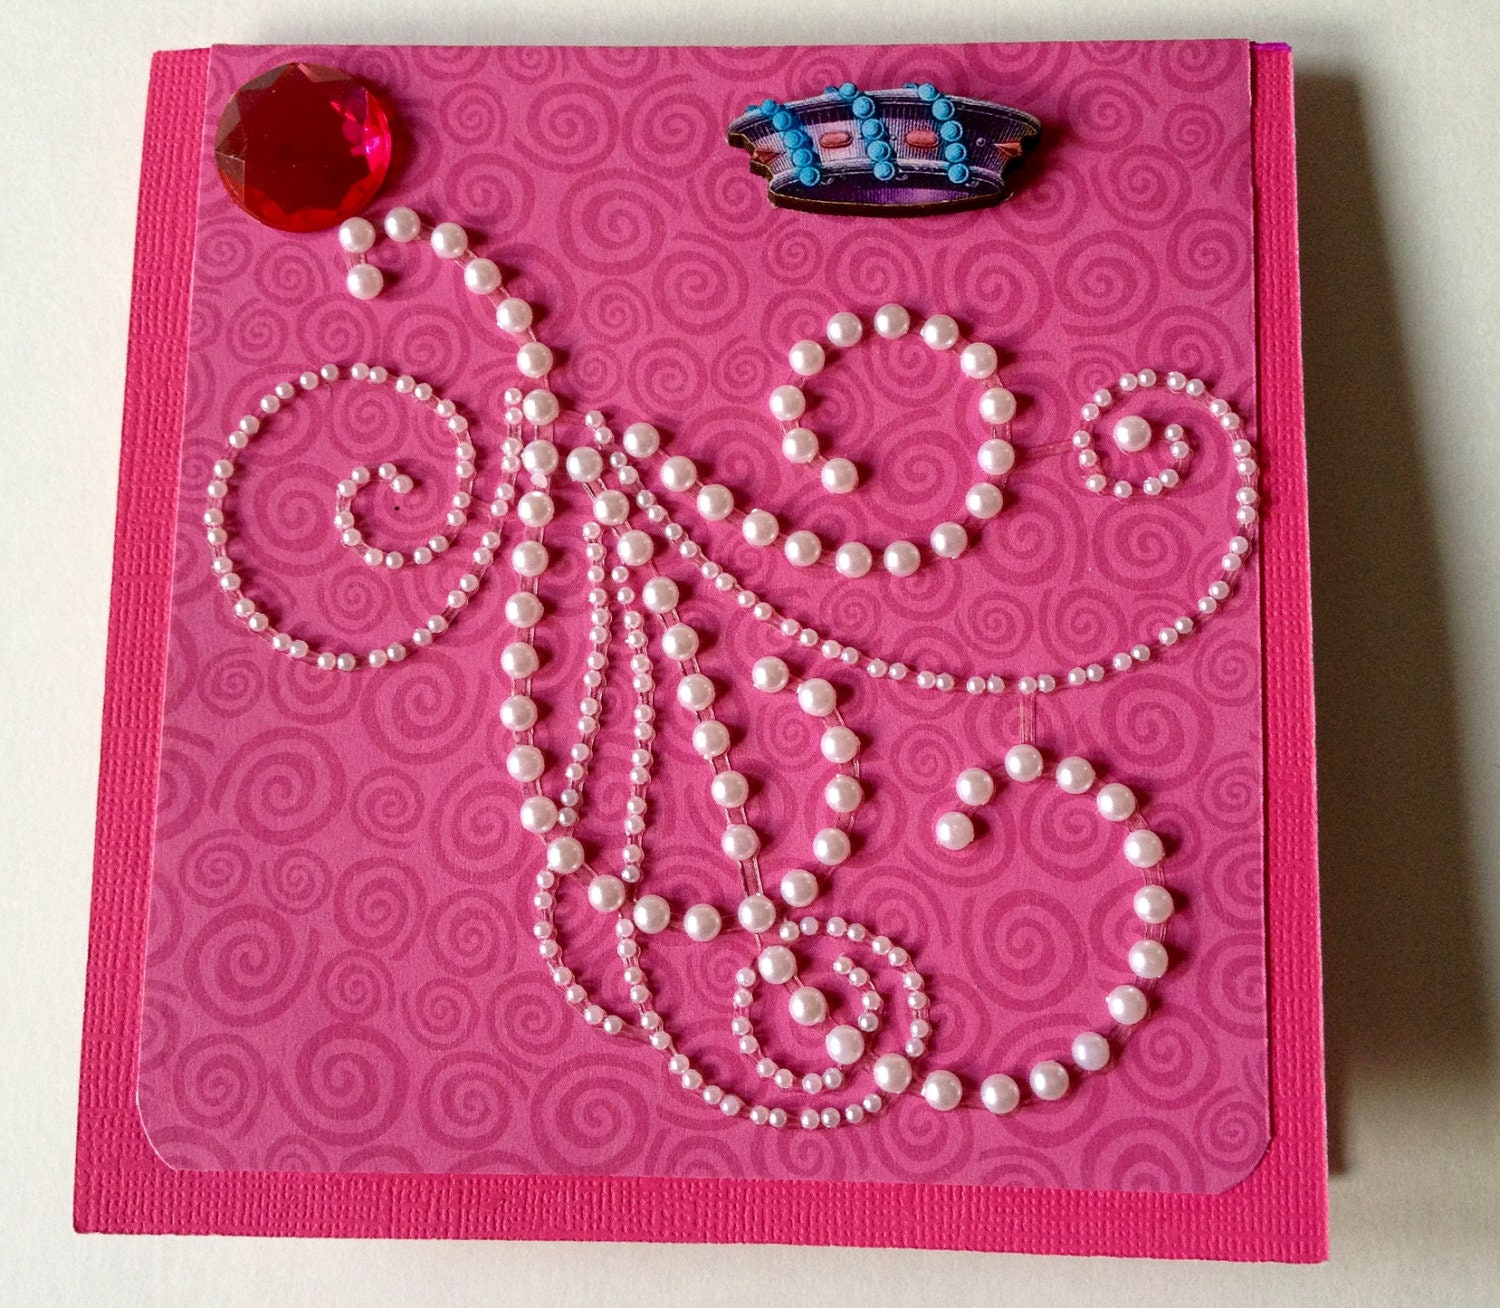 3d handmade birthday card pearls and whirls for 3d christmas cards to make at home